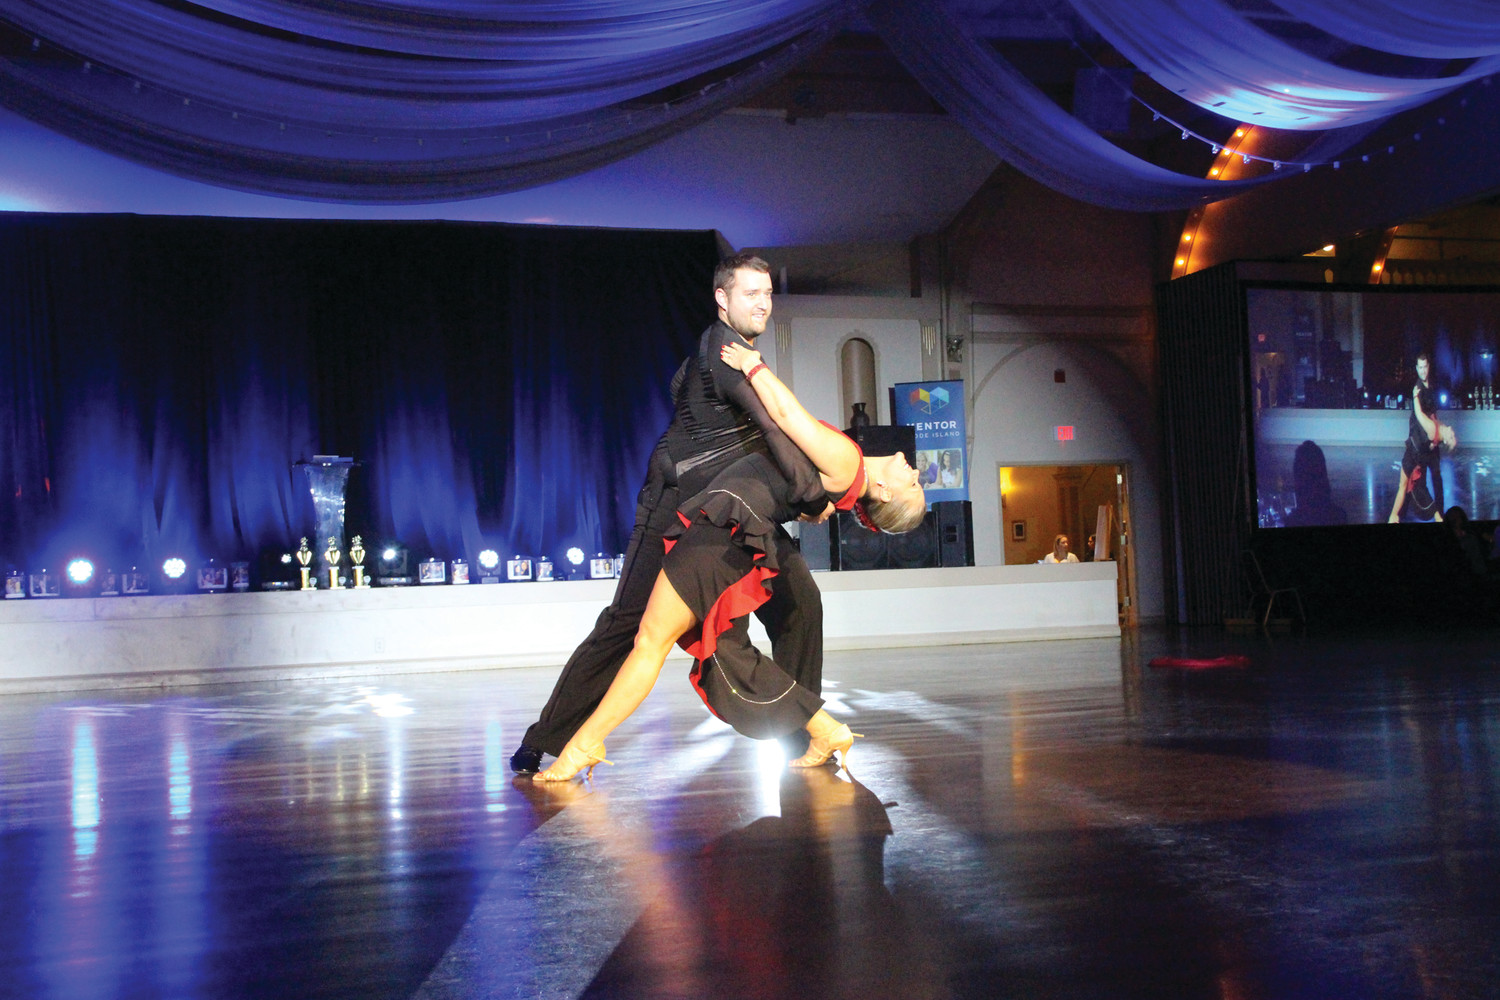 Angela Ciresi of Ciresi Chiropractic gets dipped by partner Noah Carsten in one of the many stunning scenes of the evening.